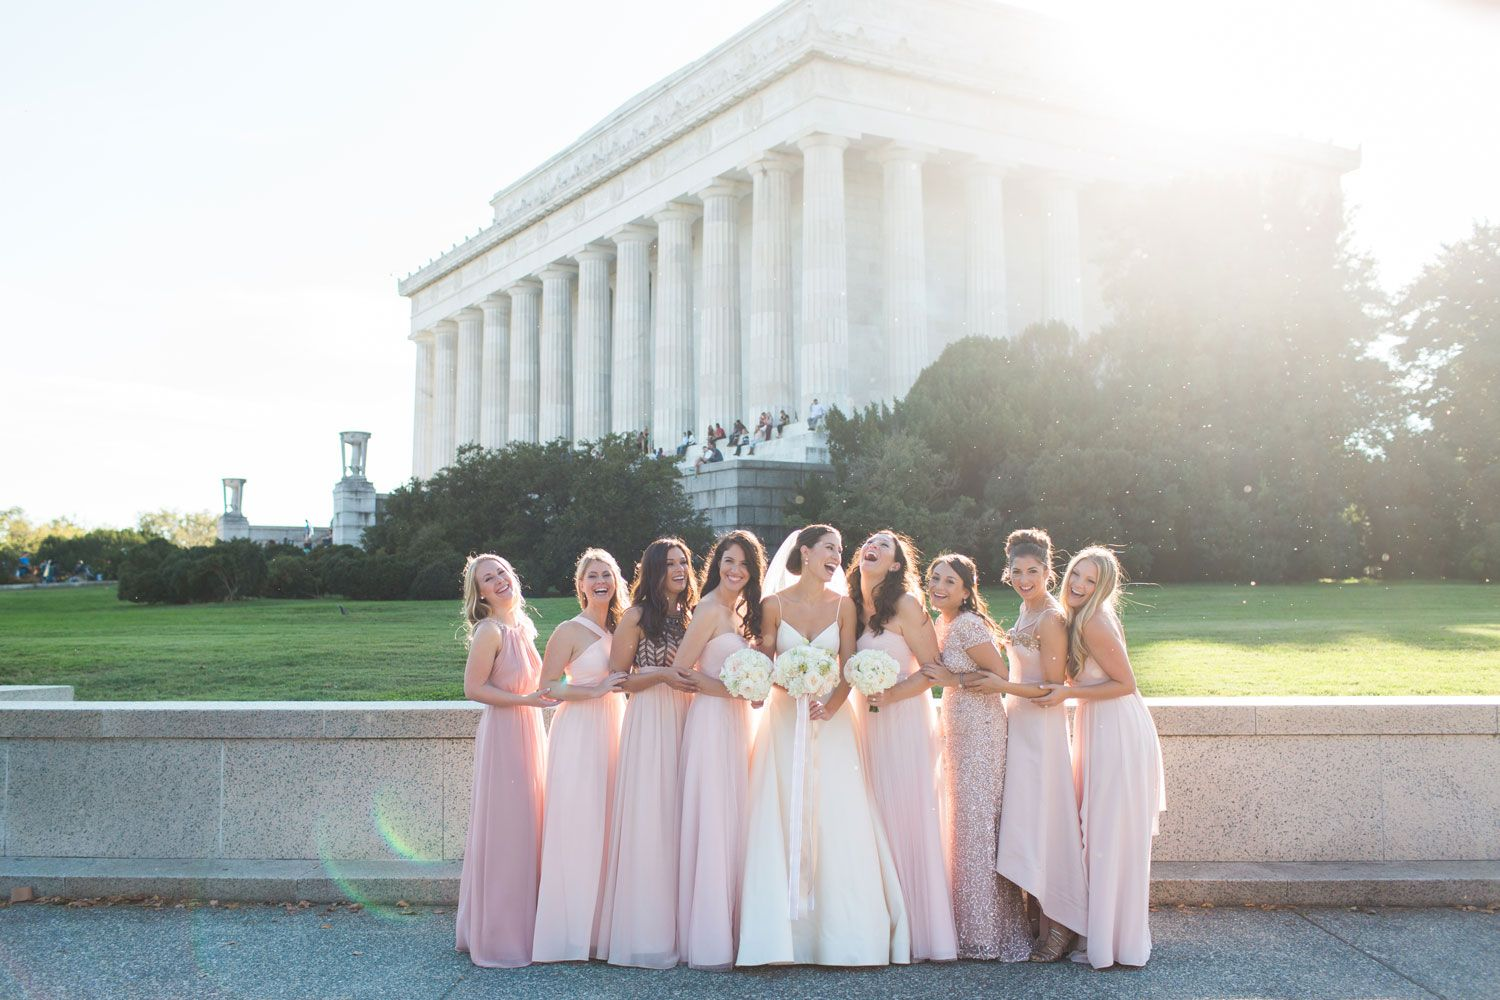 Stunning military wedding with garden ceremony in washington dc stunning military wedding with garden ceremony in washington dc ombrellifo Choice Image